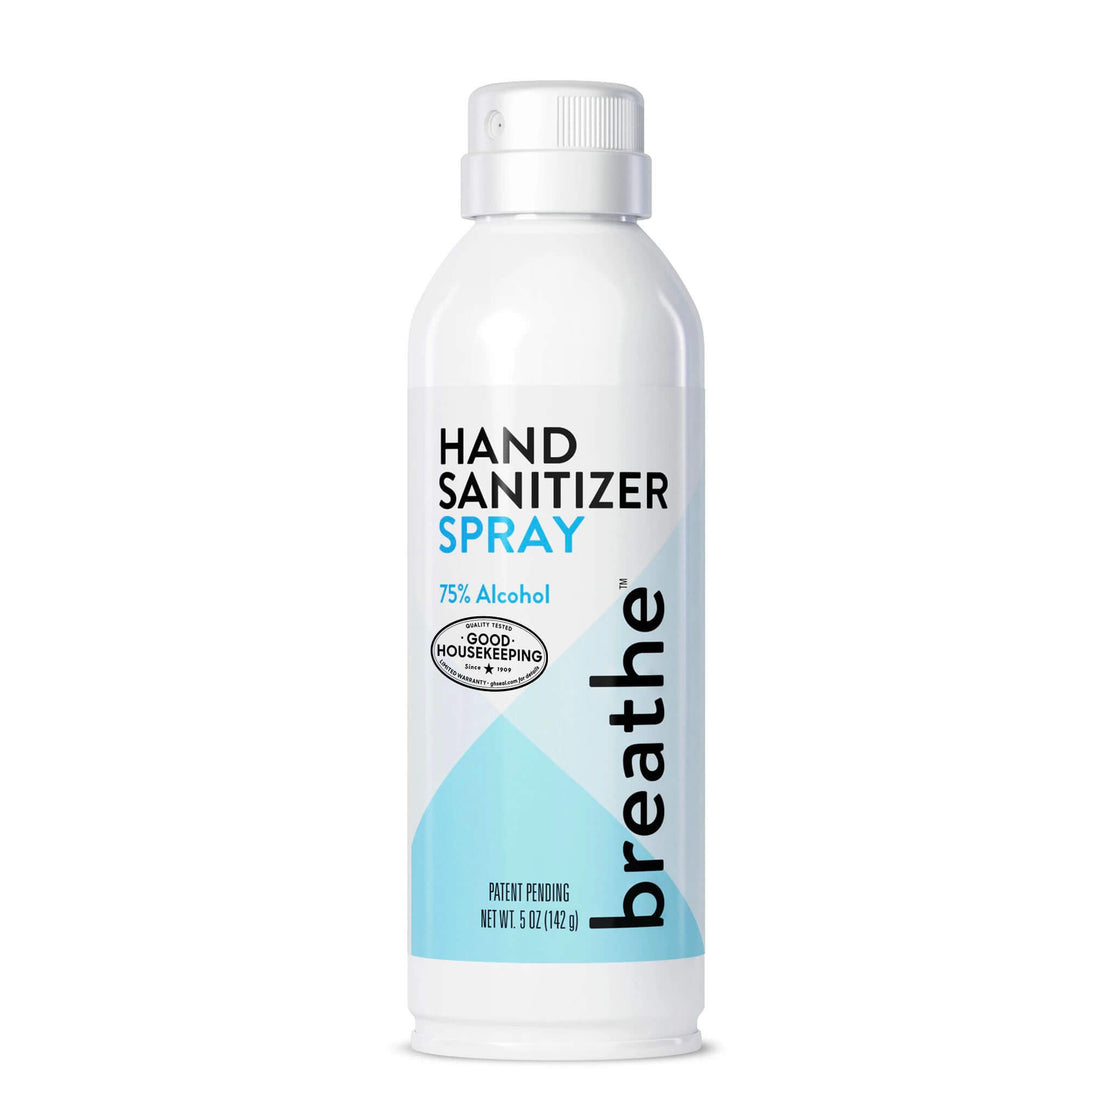 Hand Sanitizer Spray - 5 oz